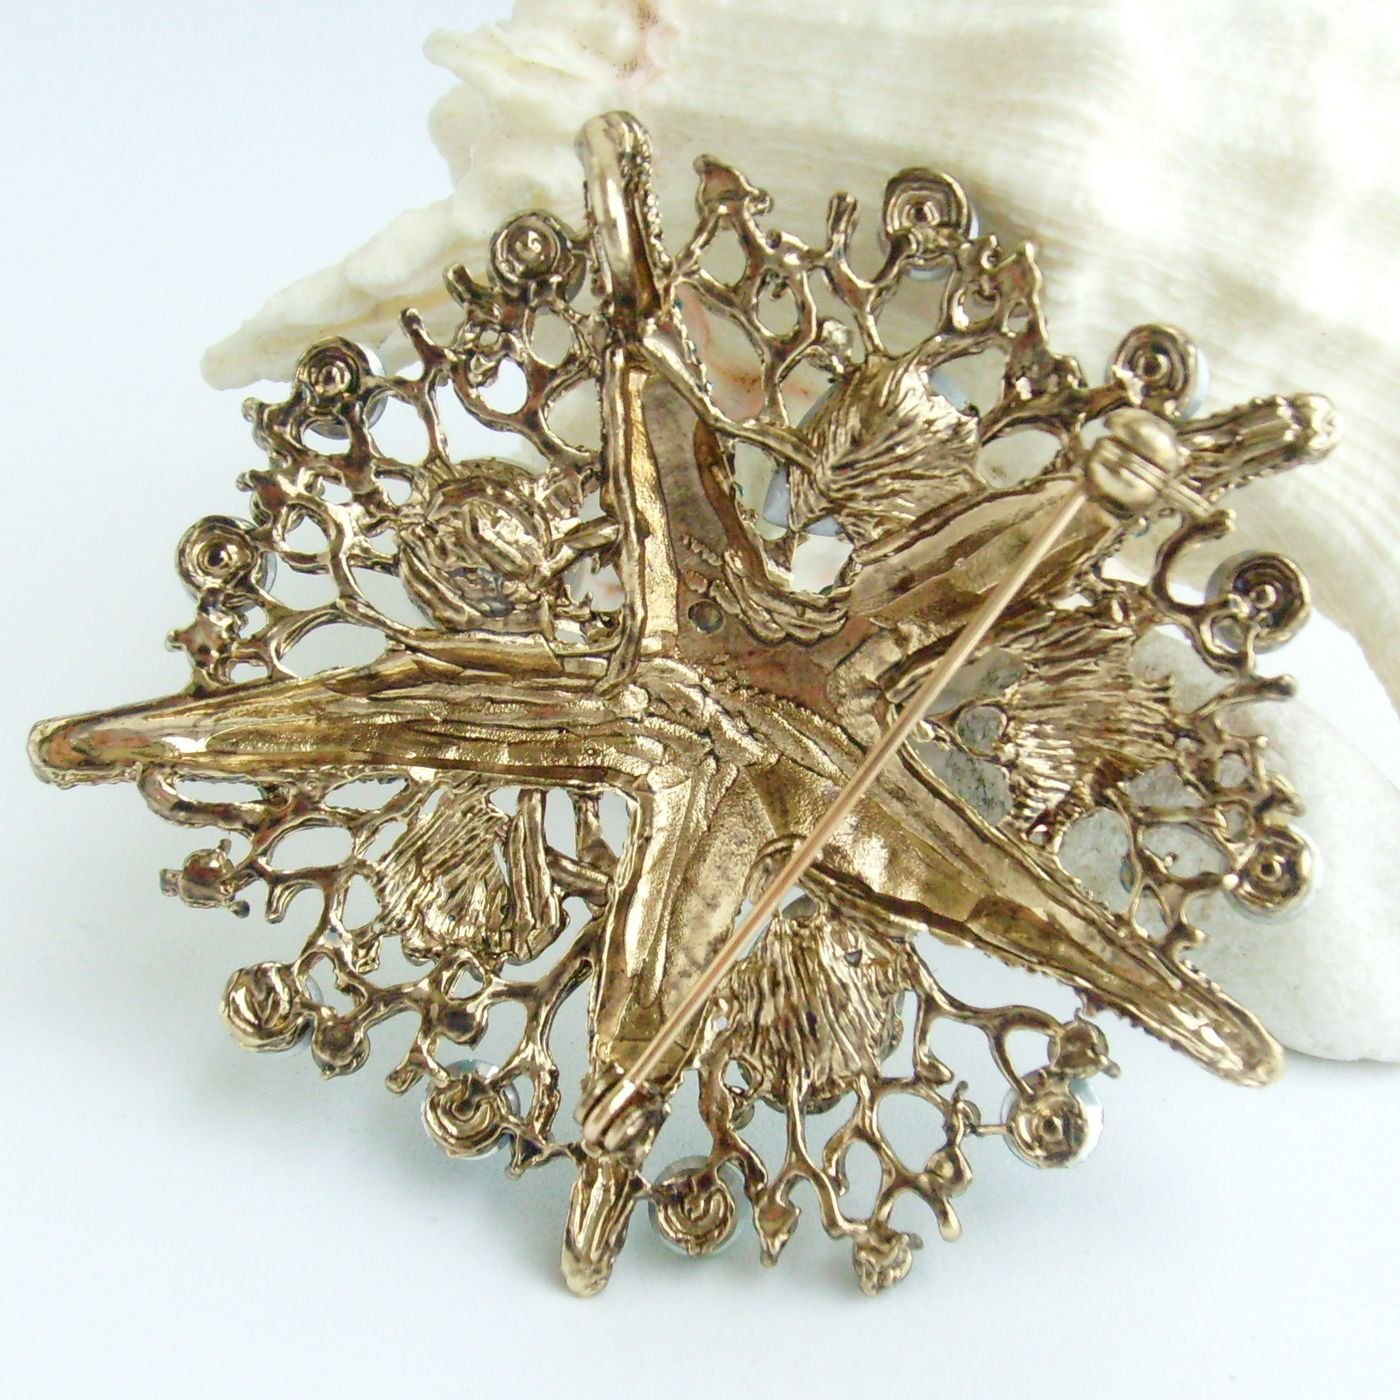 Sindary 3.15'' Starfish Brooch Pin Austrian Crystal Pendant BZ6412 (Gold-Tone Green) by Sindary Jewelry (Image #5)